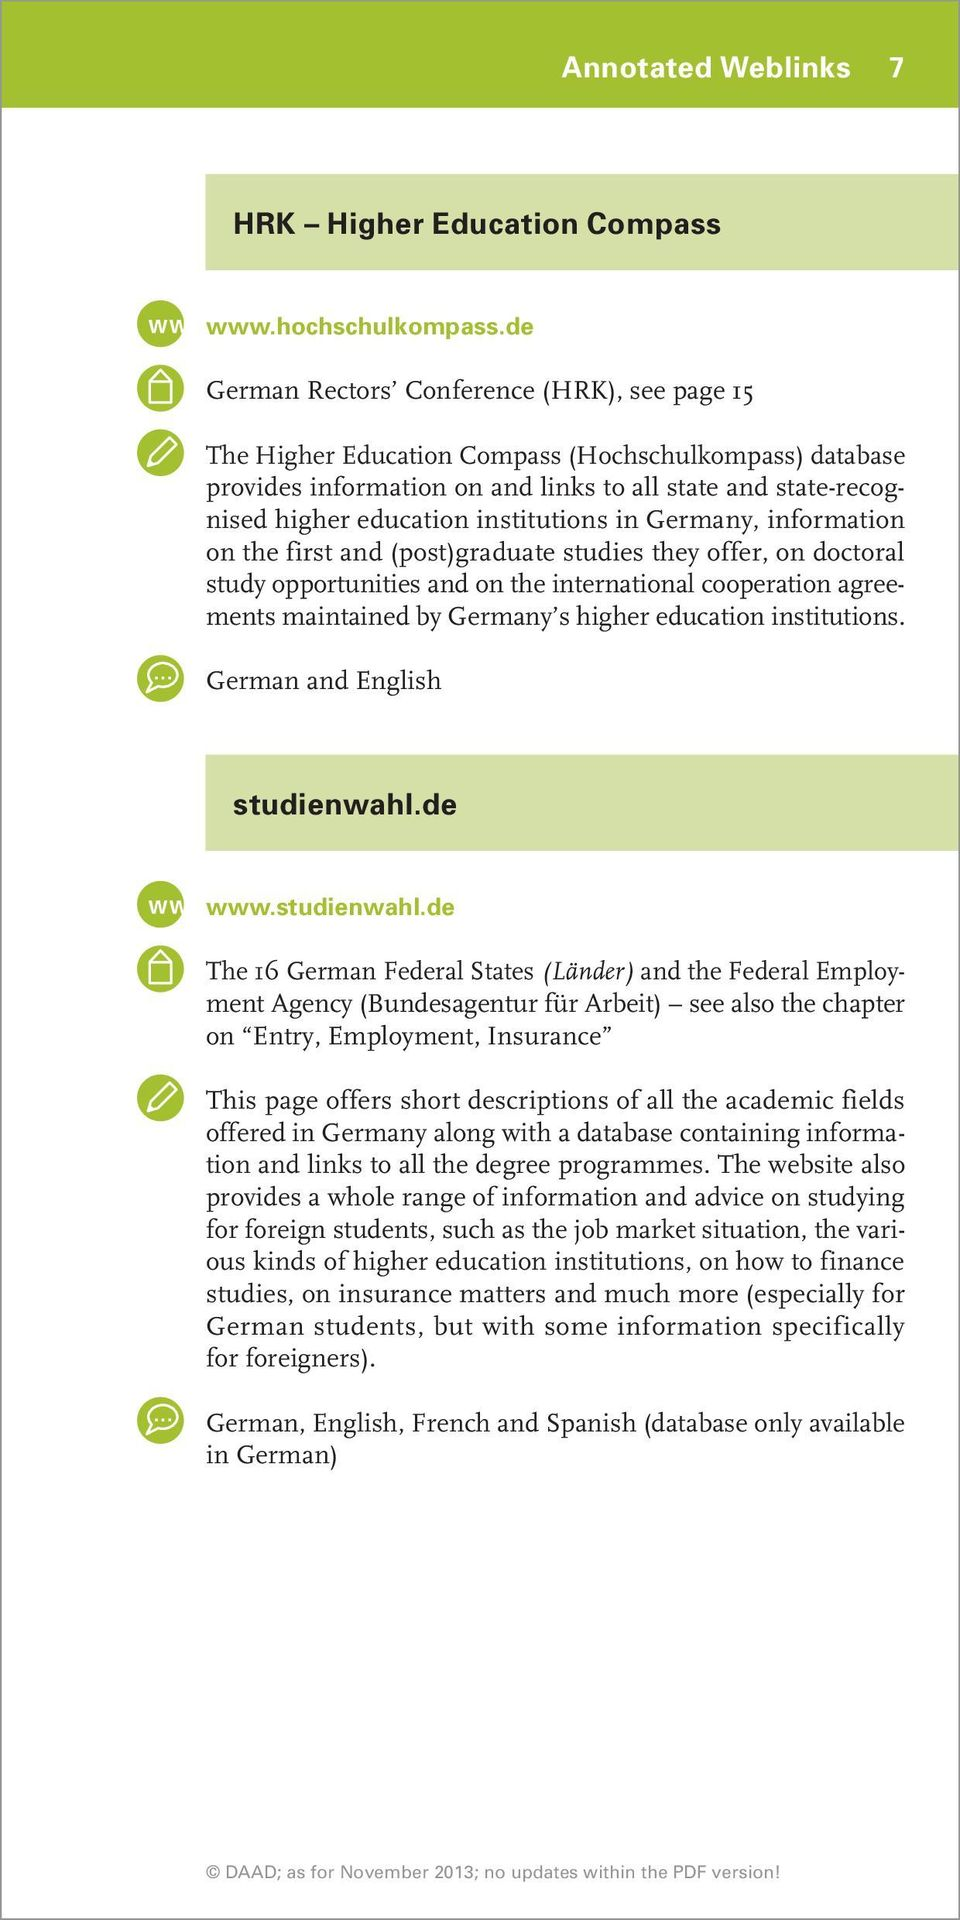 institutions in Germany, information on the first and (post)graduate studies they offer, on doctoral study opportunities and on the international cooperation agreements maintained by Germany s higher